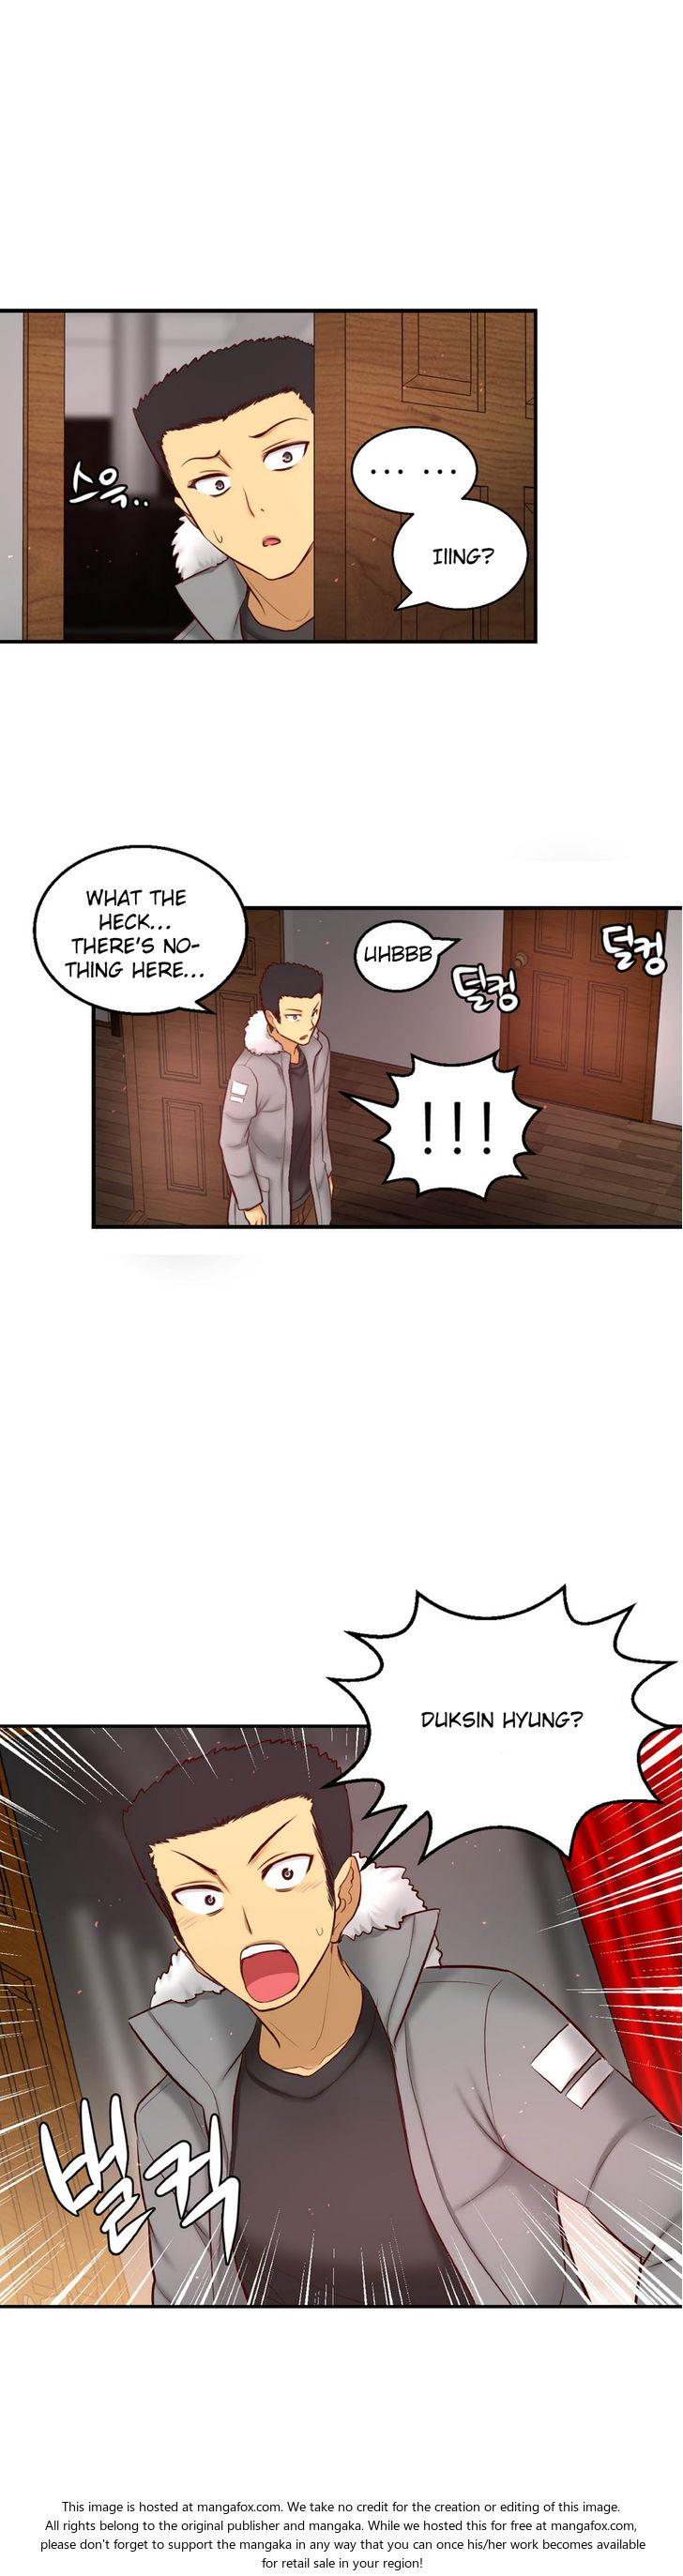 [Donggul Gom] She is Young (English) Part 1/2 1754